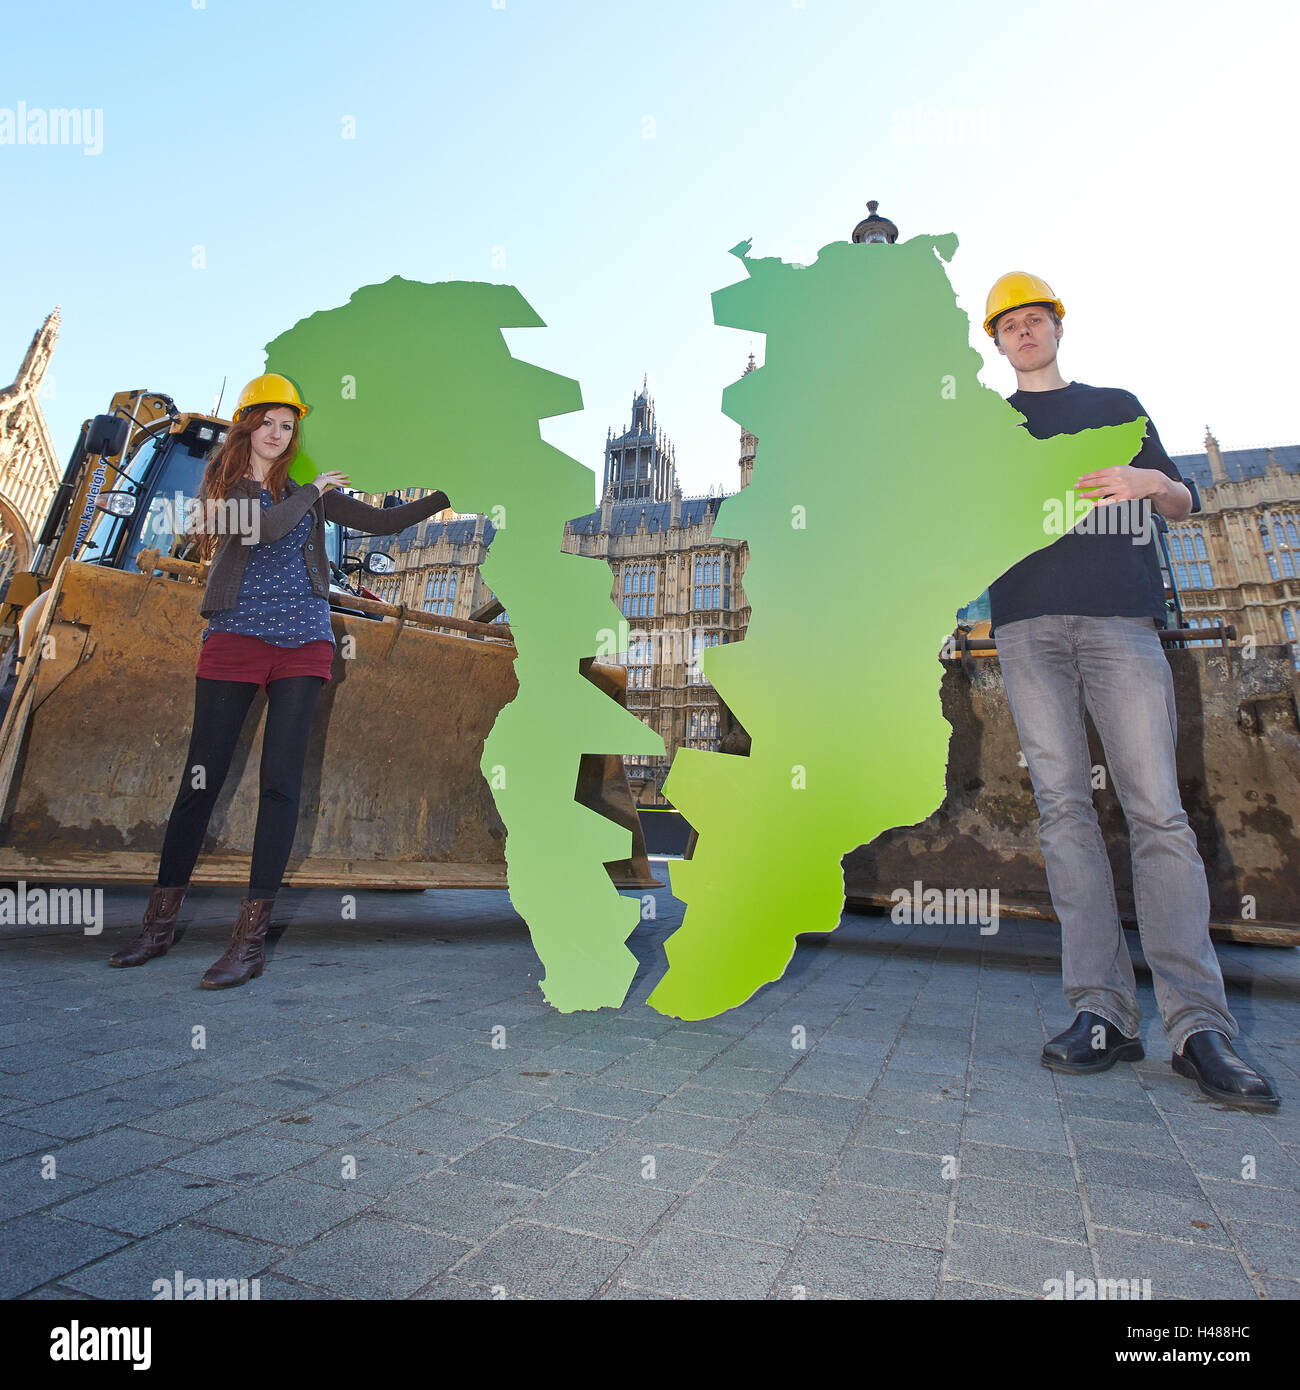 Oxfam employees pose with a map of Africa split down the middle to highlight the problem of land grabs - Stock Image